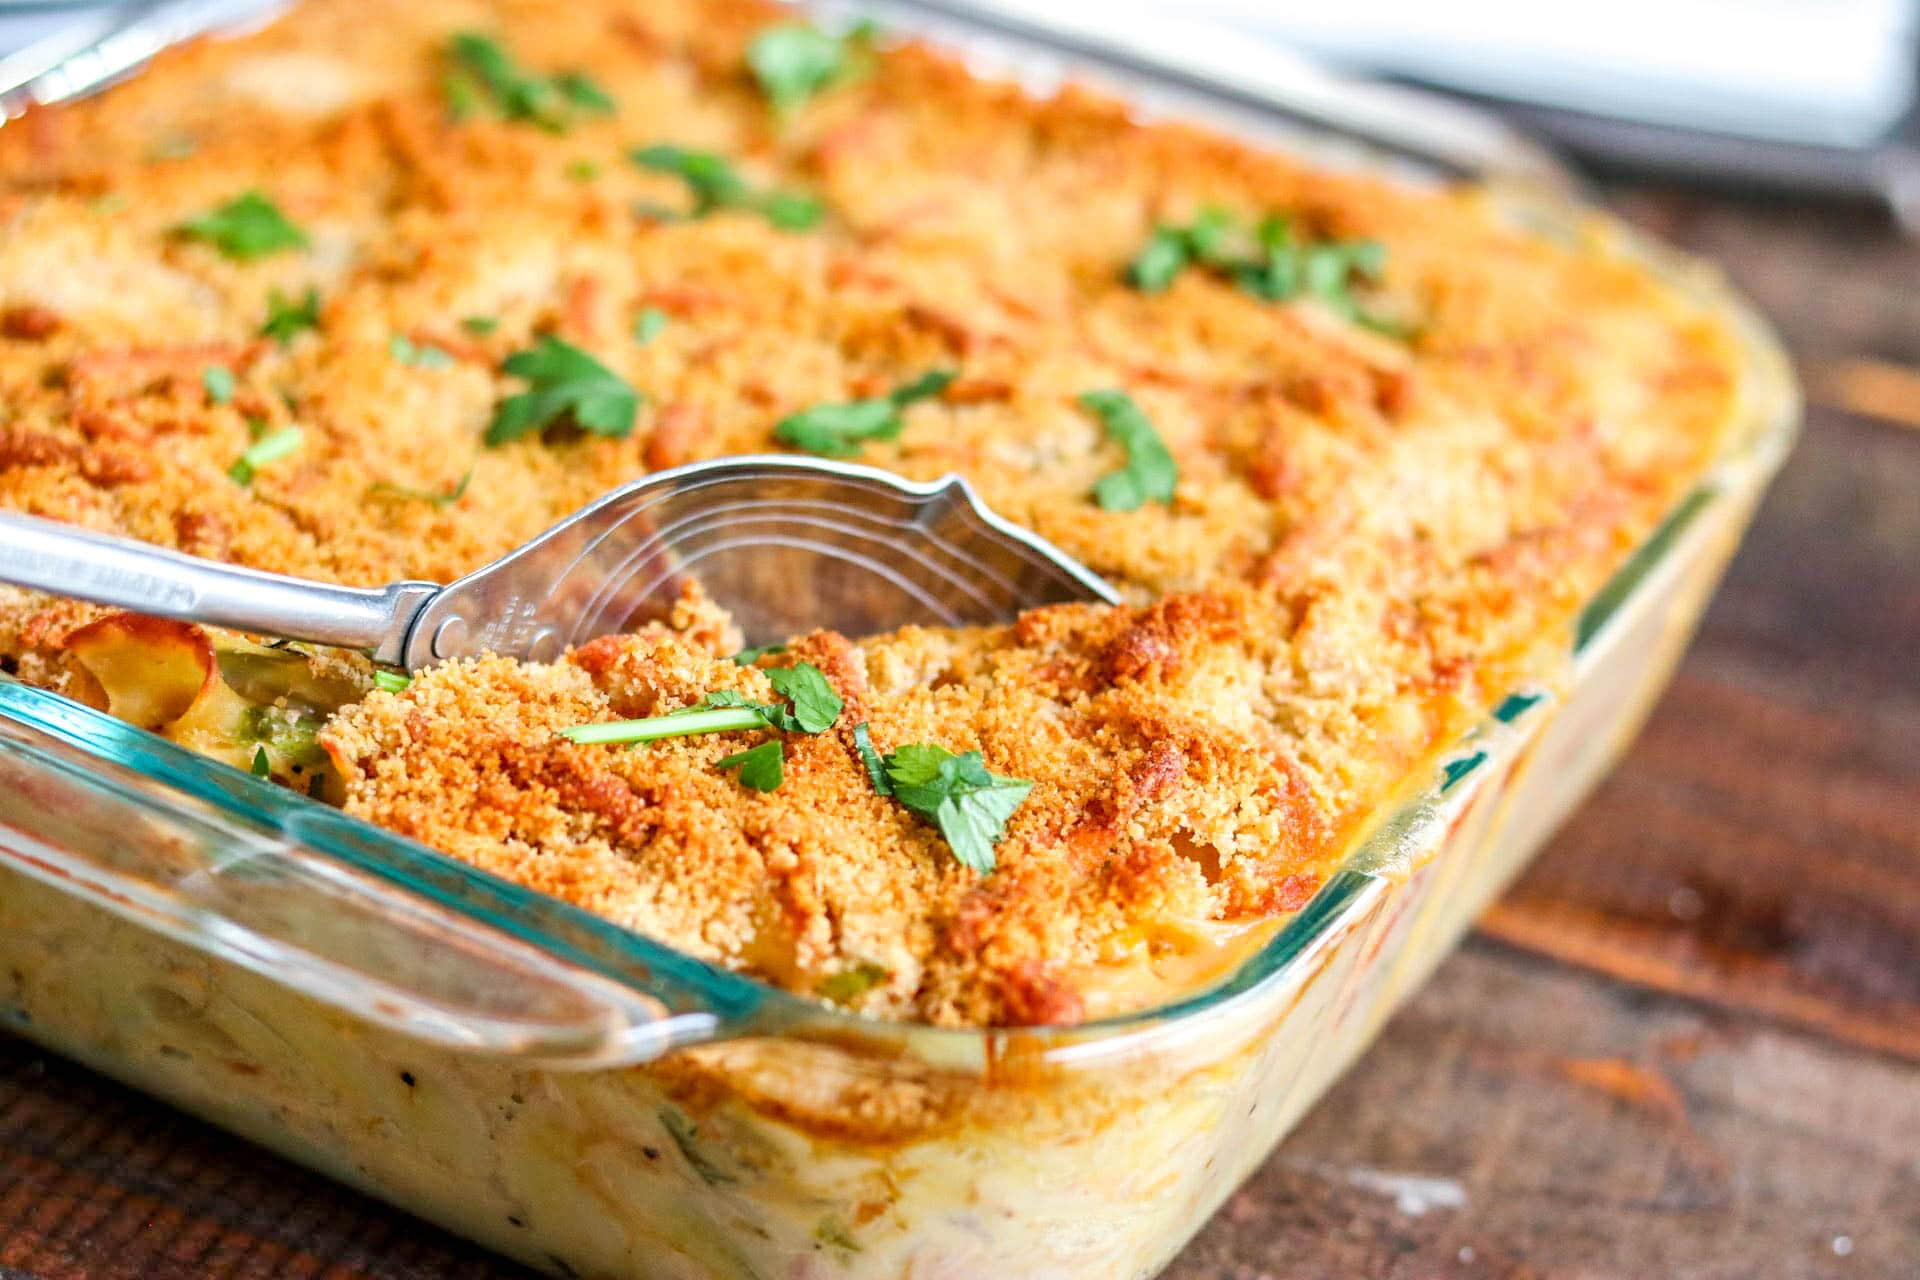 tuna noodle casserole baked with parsley on top